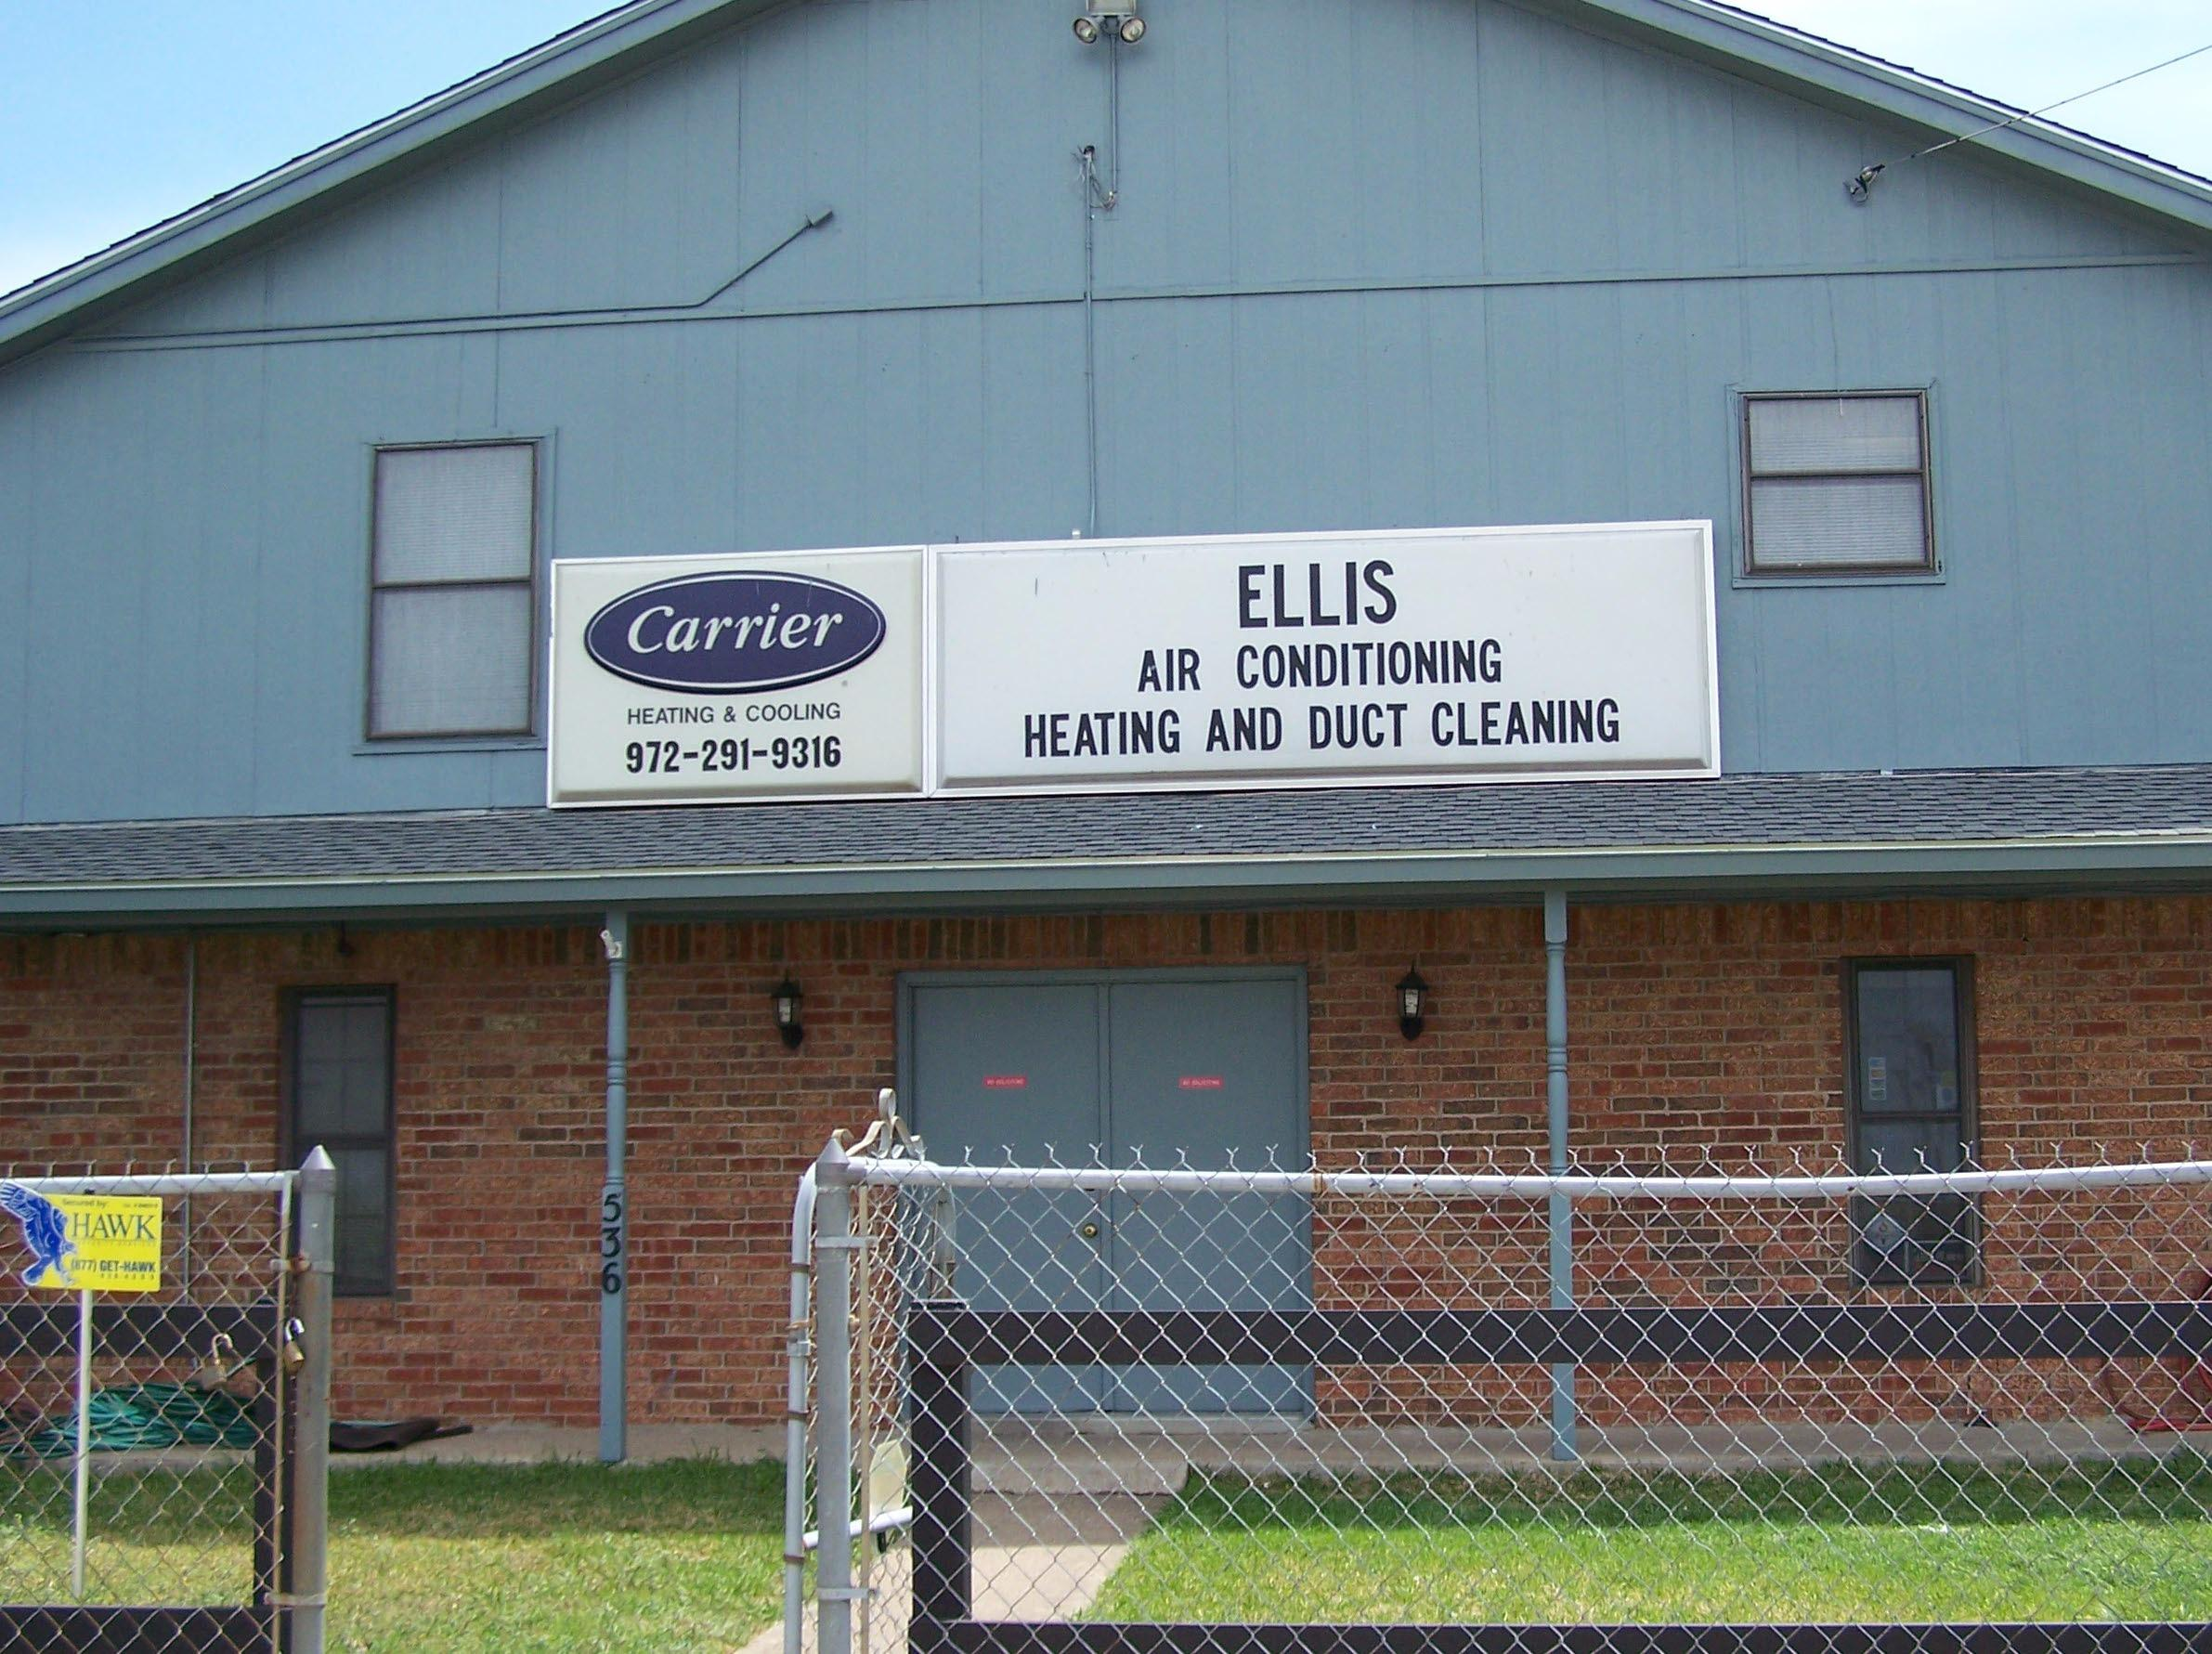 Ellis Air Conditioning and Heating image 2